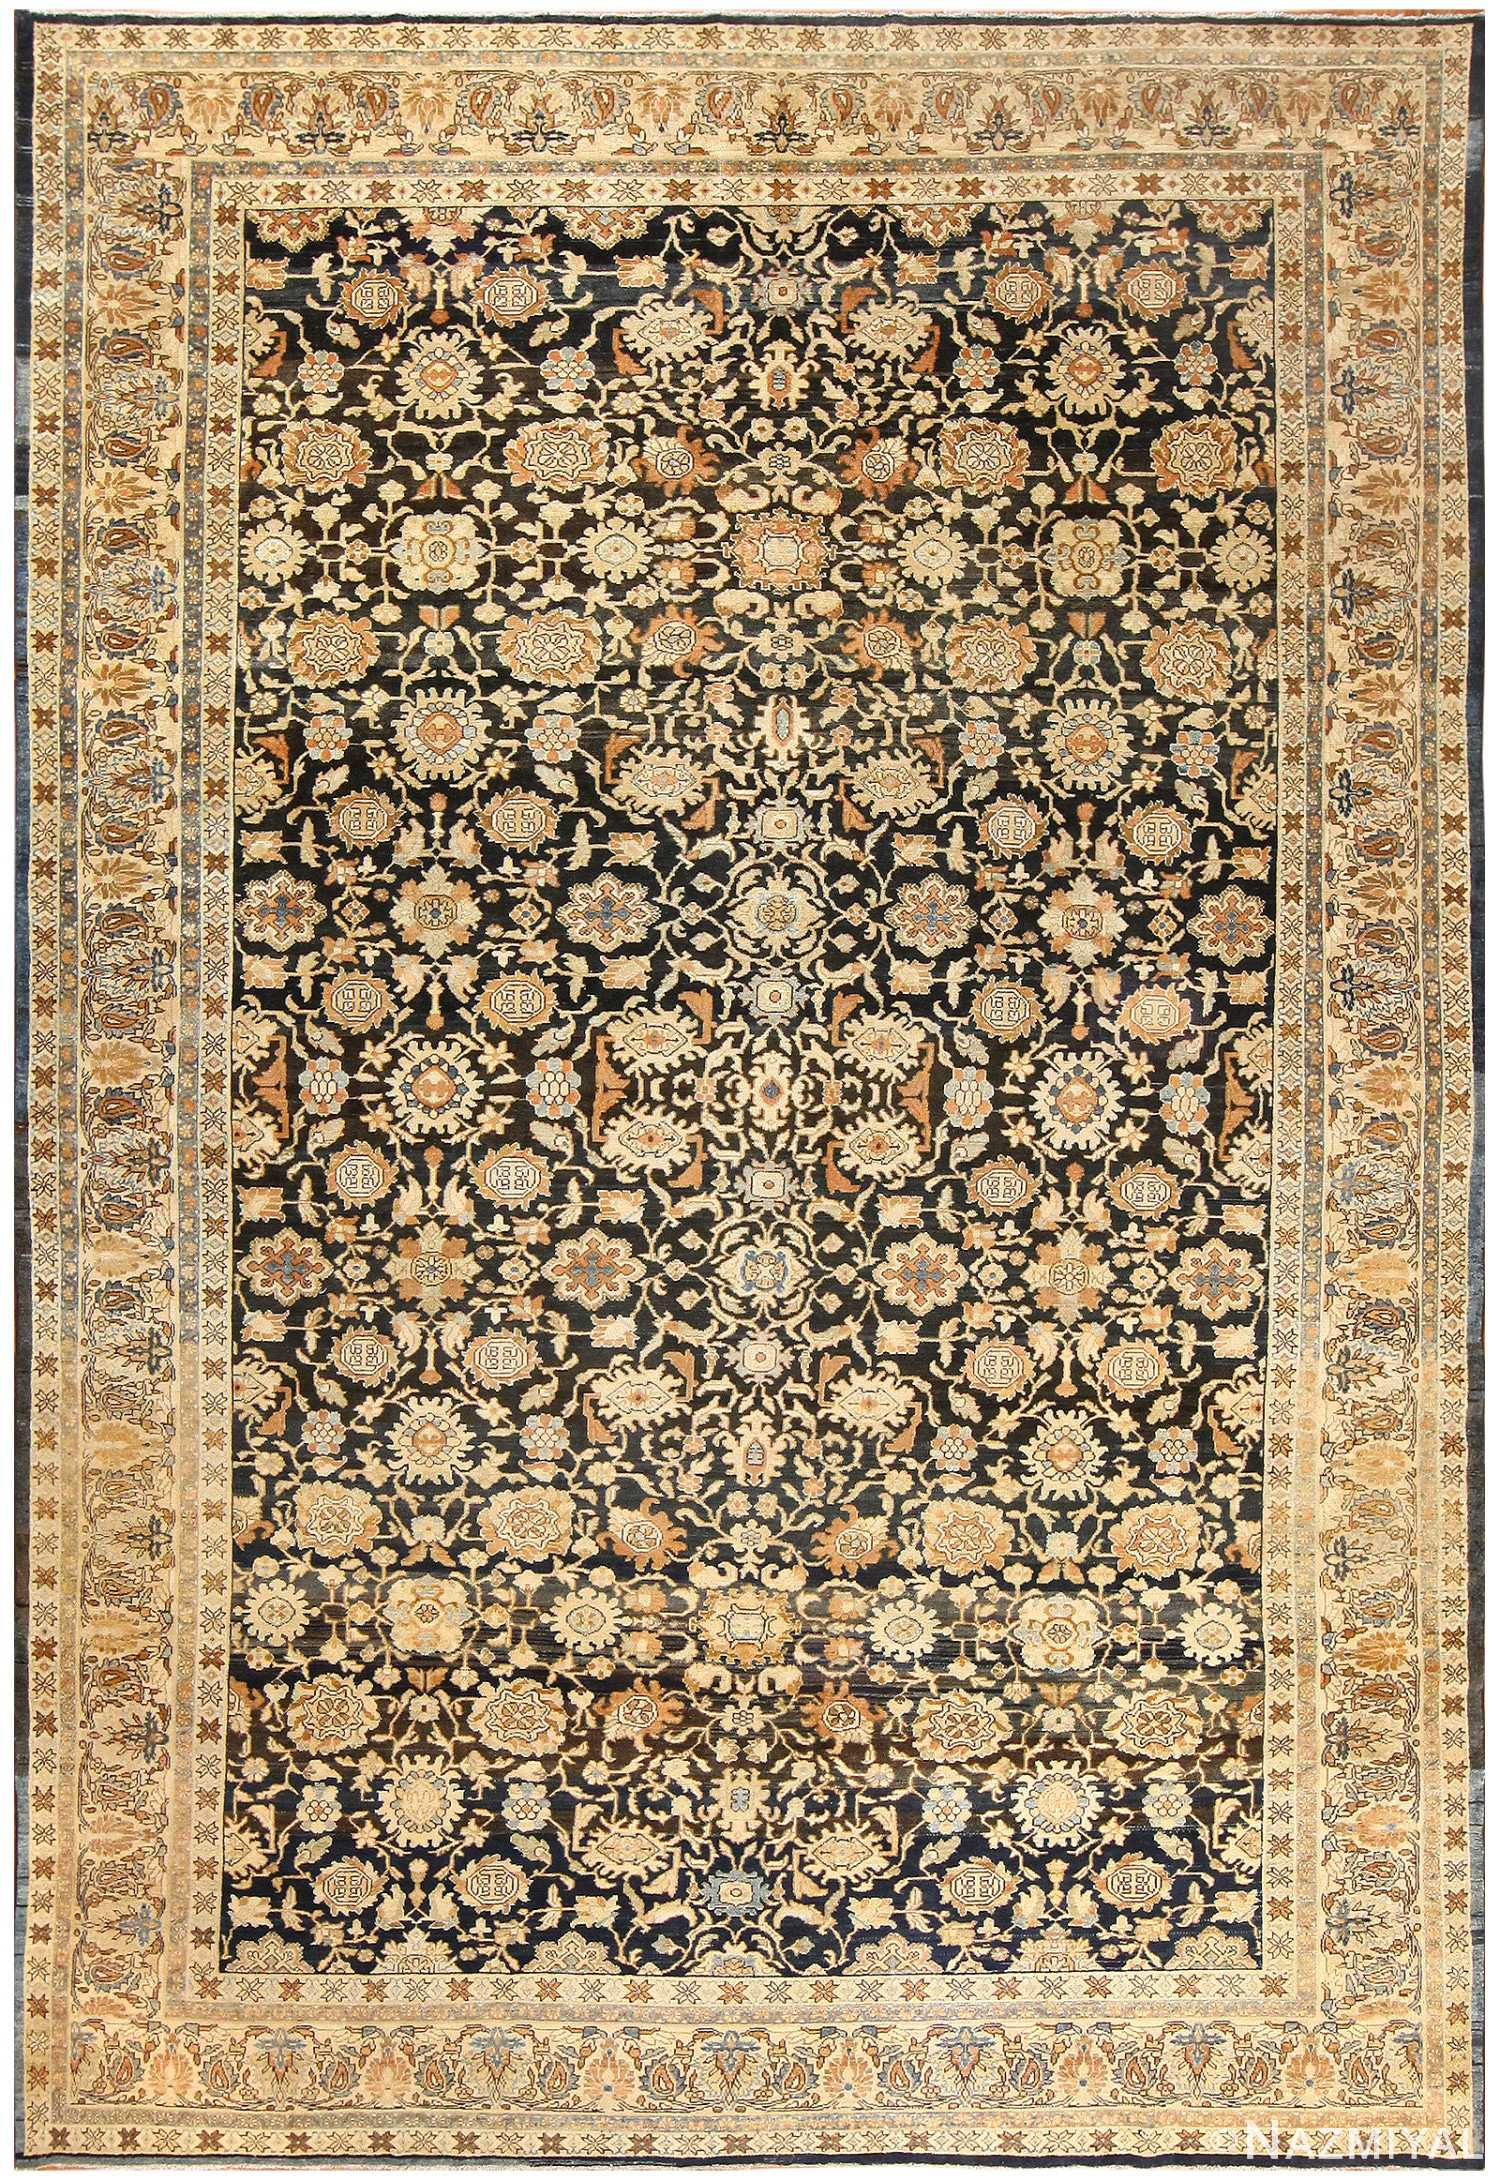 Antique Persian Malayer Rug 48387 Detail/Large View